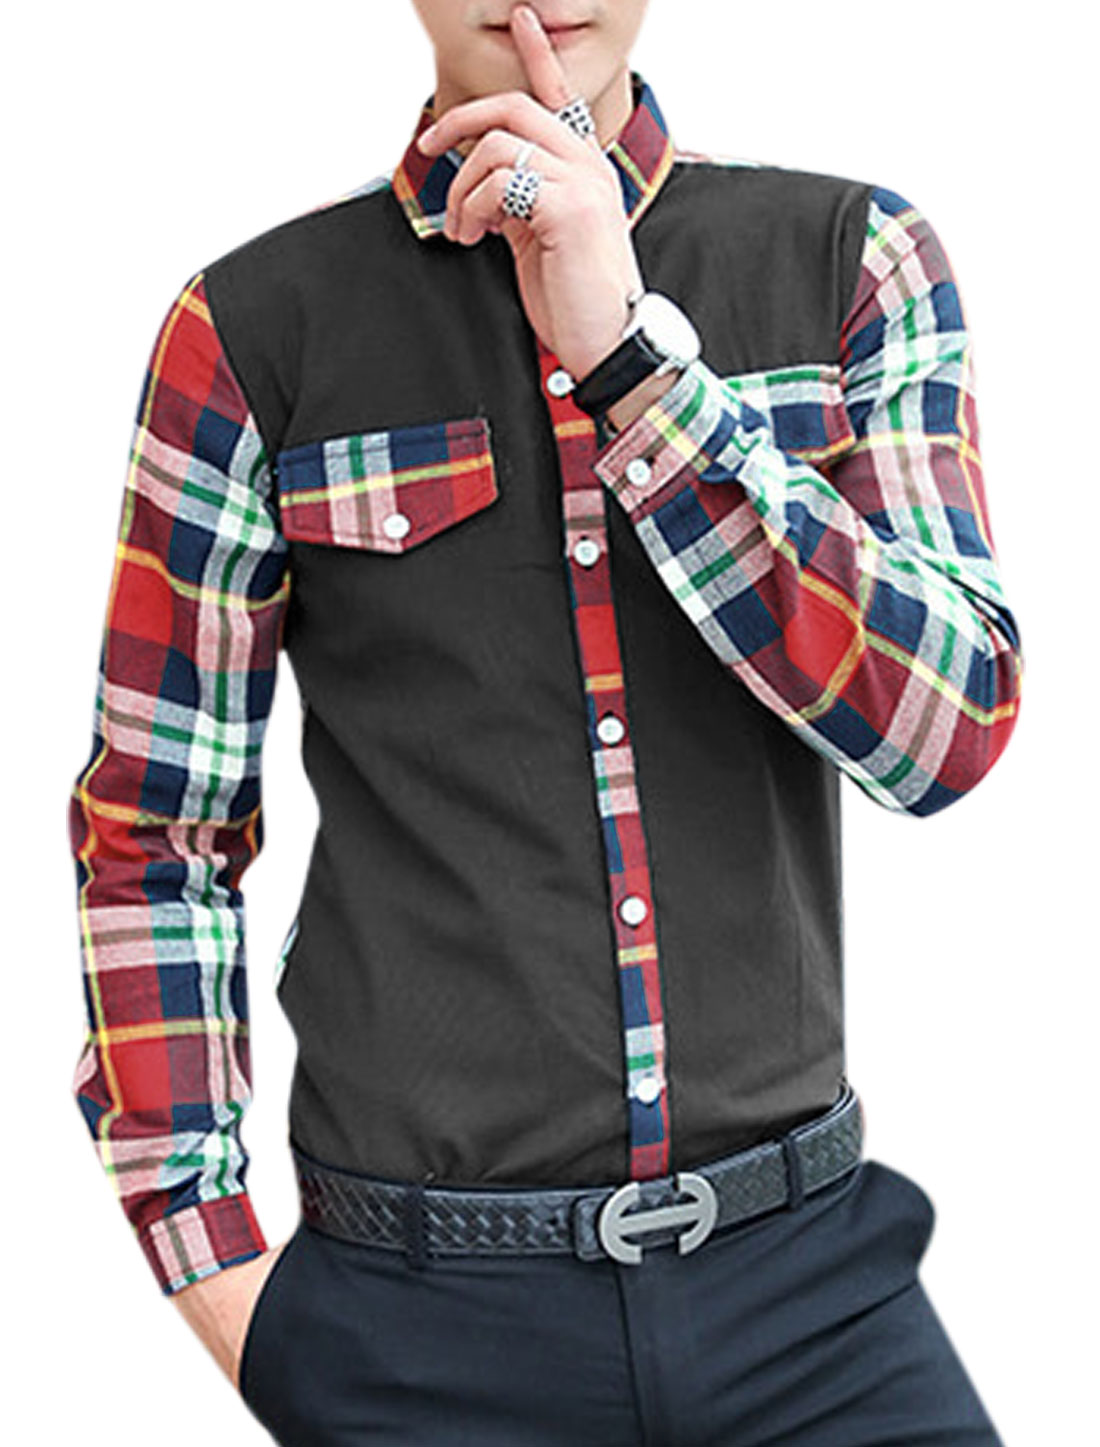 Men Plaids Pattern Single Breasted Mock Chest Pockets Shirt Red Black M